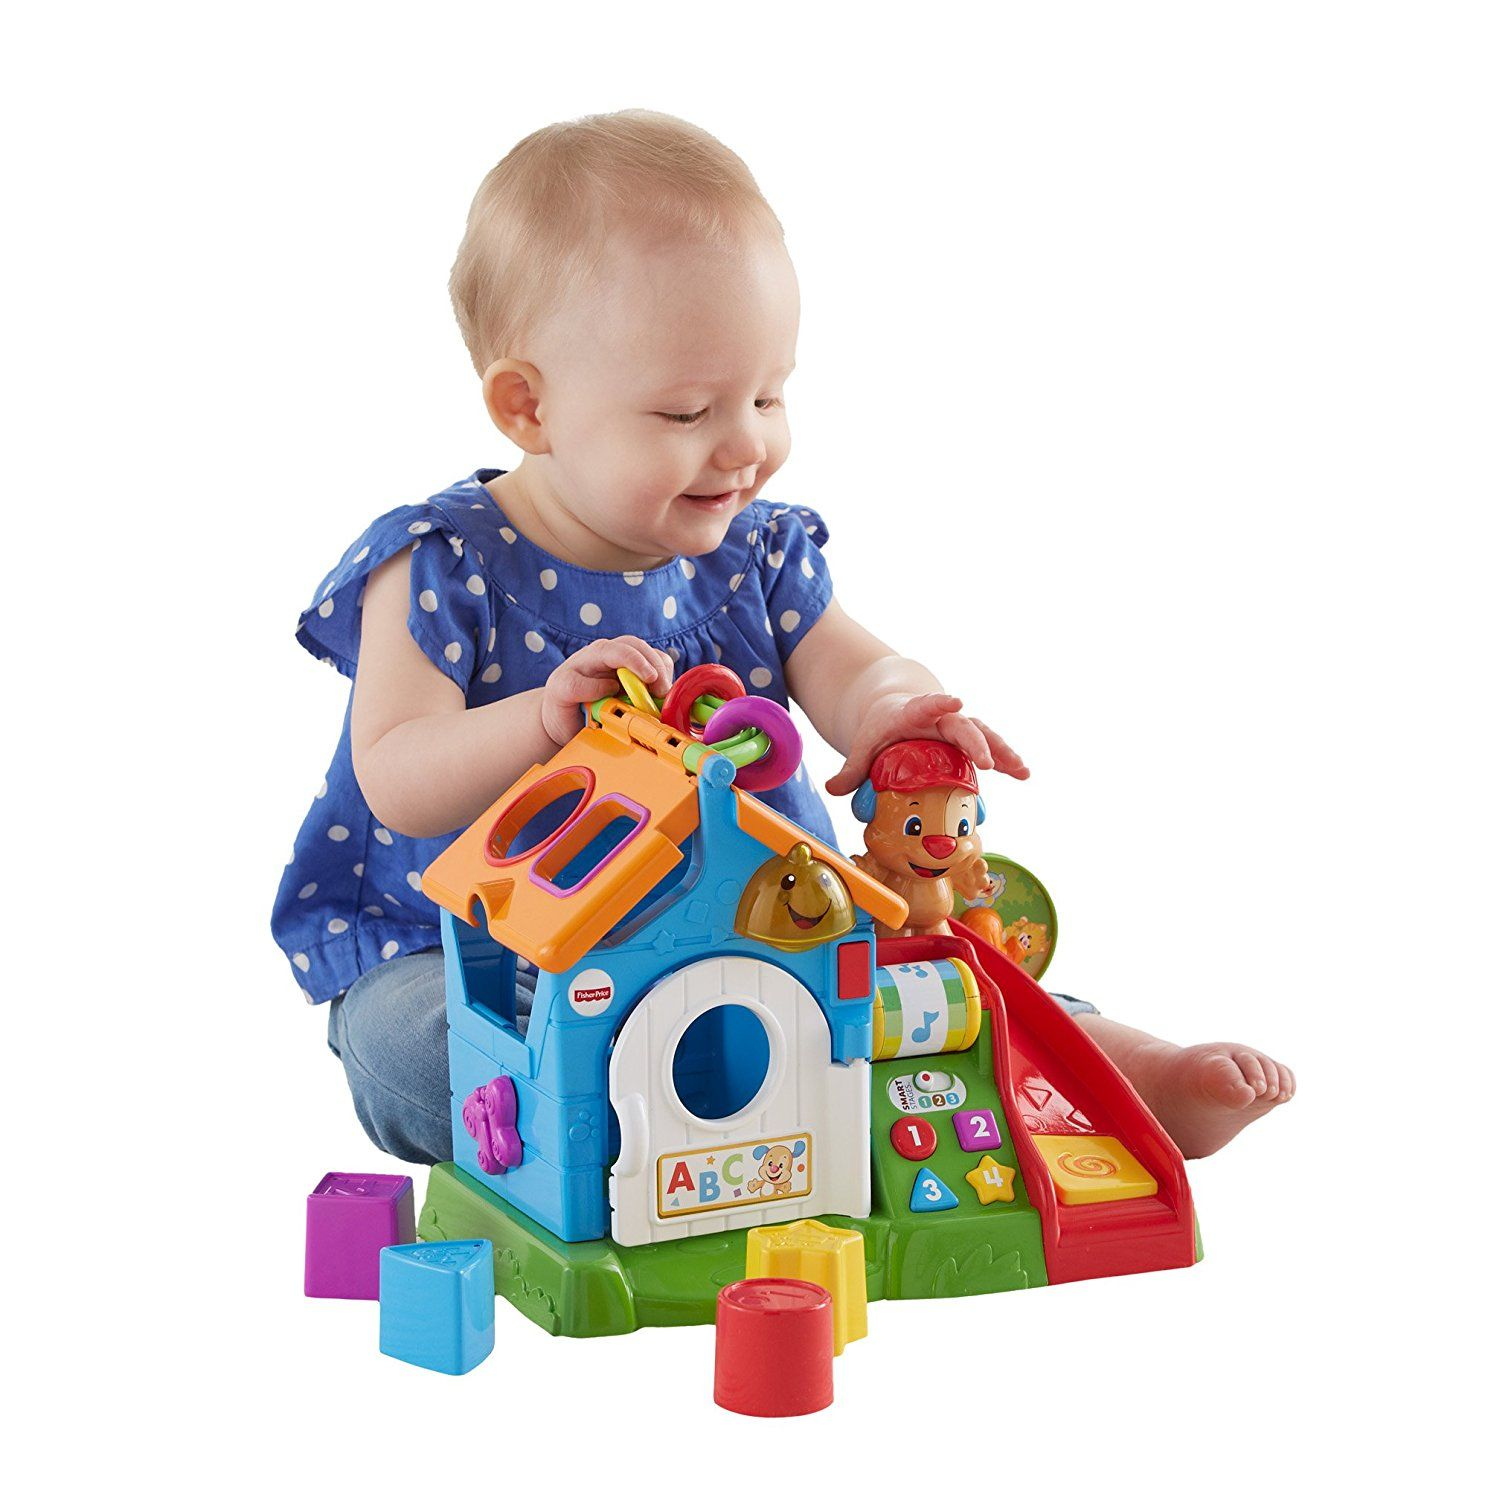 Amazon Com Fisher Price Laugh Learn Smart Stages Activity Play House Toys Games Toddler Toys Toddler Girl Toys Toddler Boy Toys